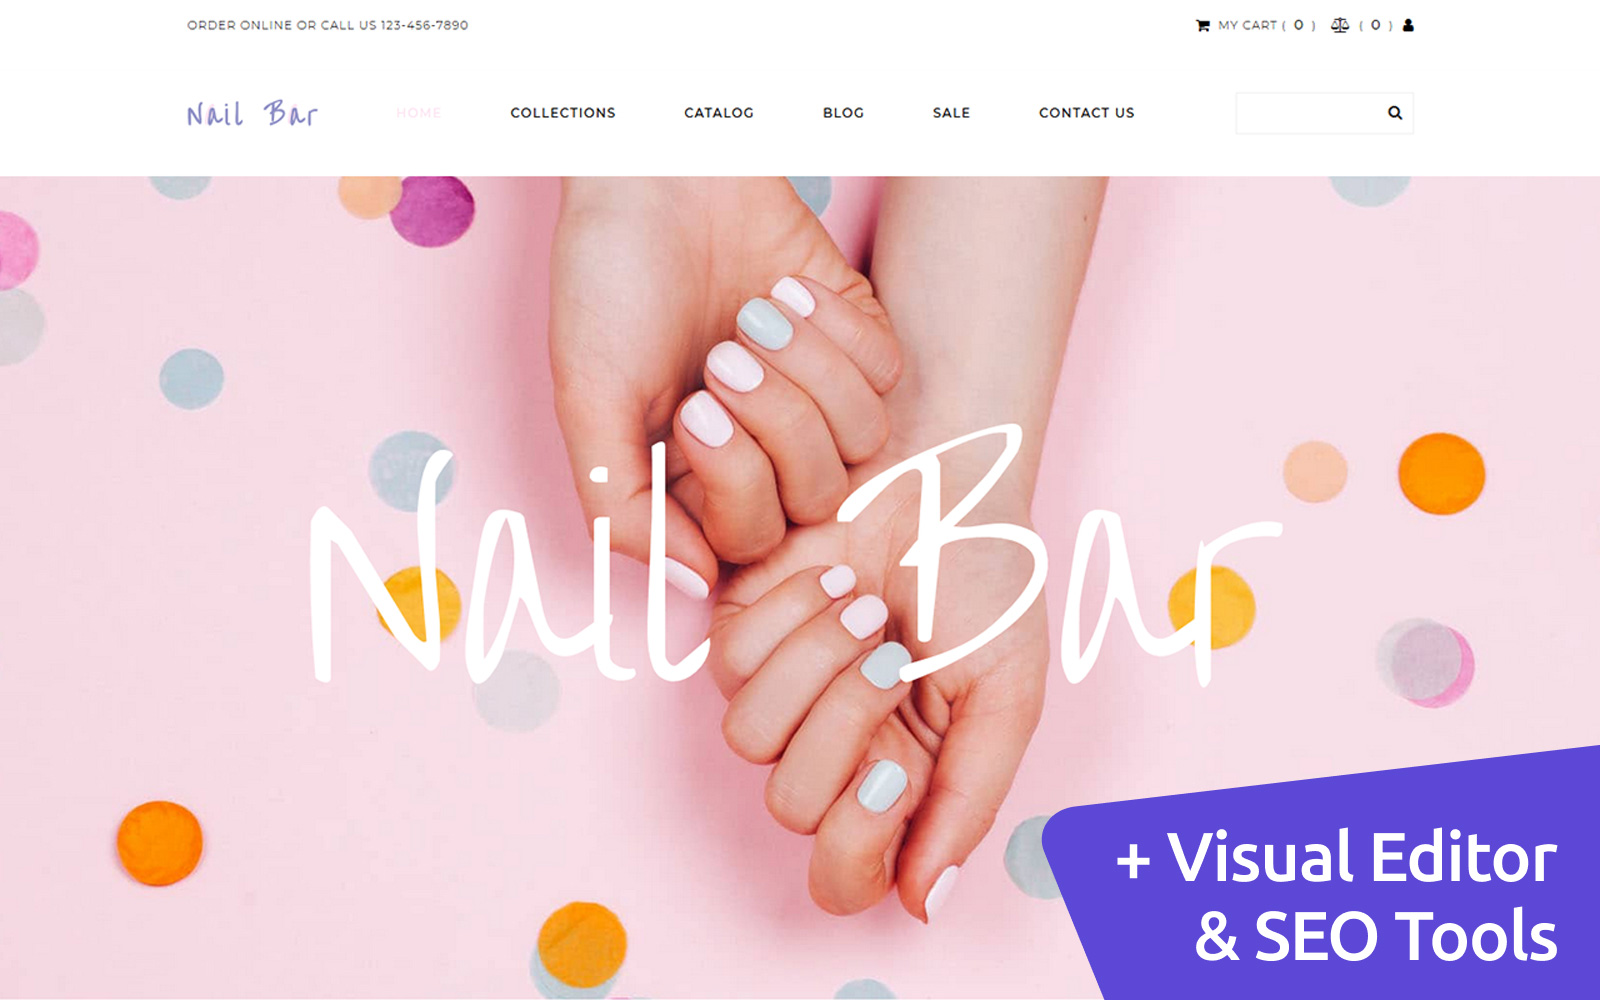 Nail Bar - Cosmetics Store Template Ecommerce MotoCMS №112685